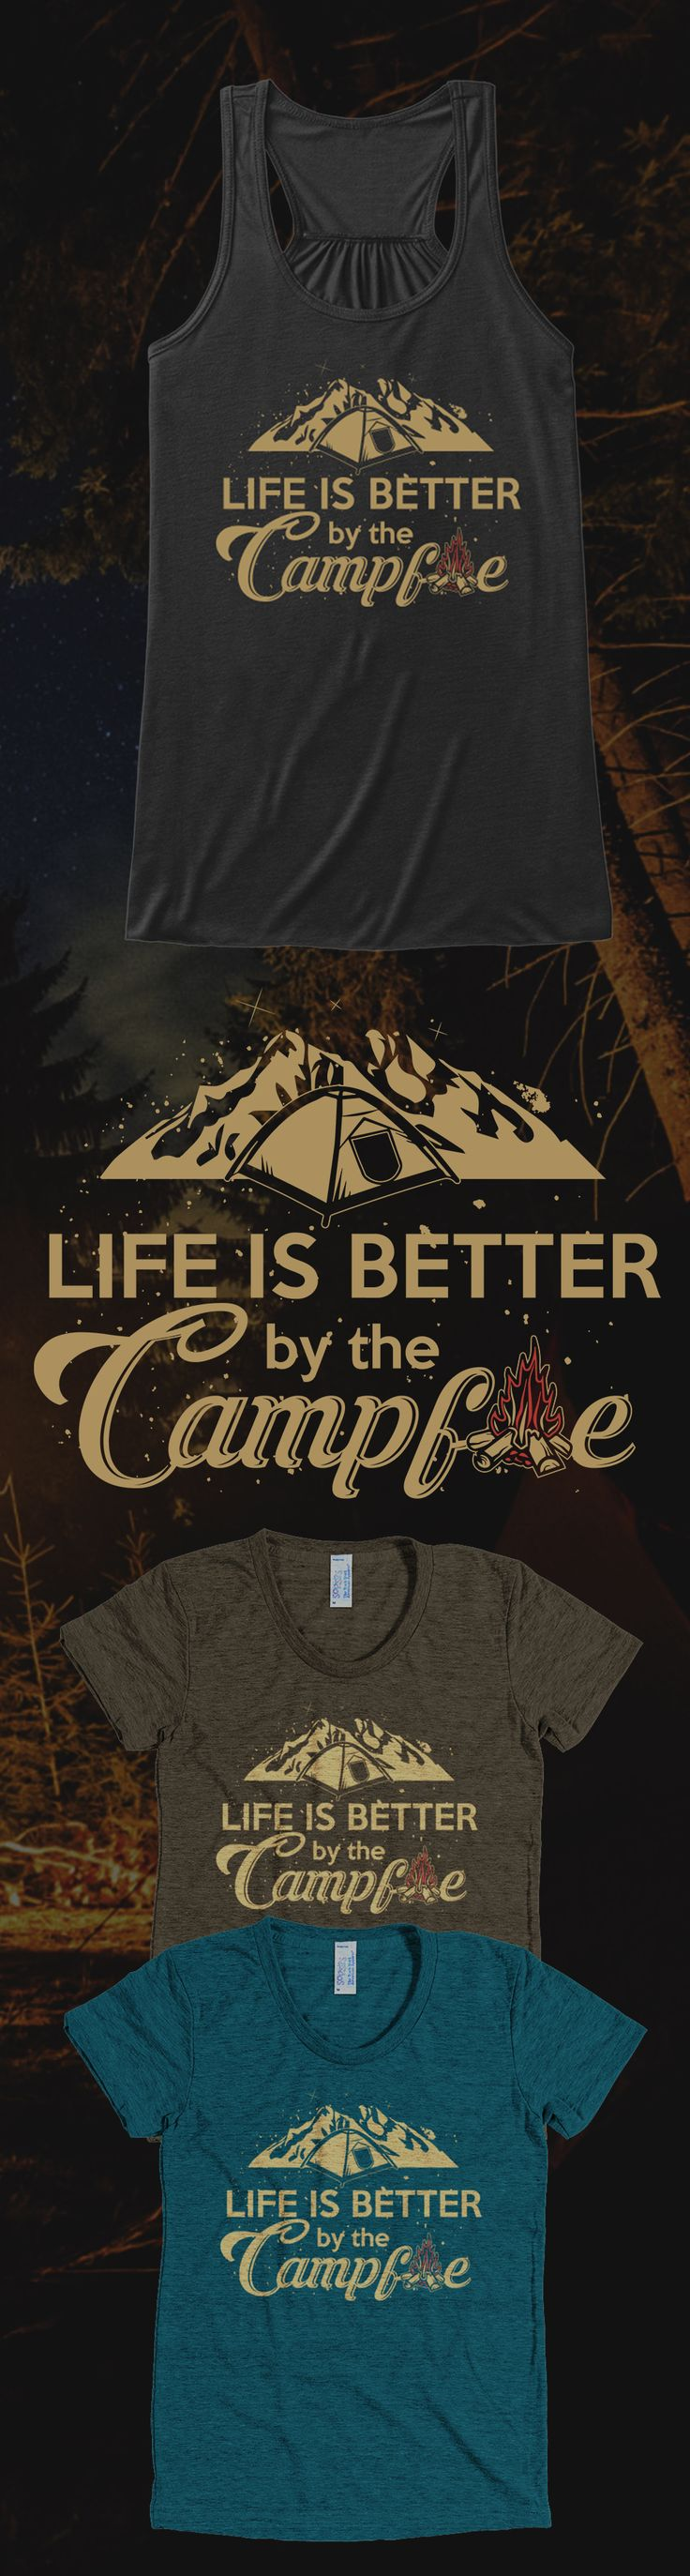 Love camping? Check out this awesome camping t-shirt you will not find anywhere else. Not sold in stores and Buy 2 or more, save on shipping! Grab yours or gift it to a friend, you will both love it